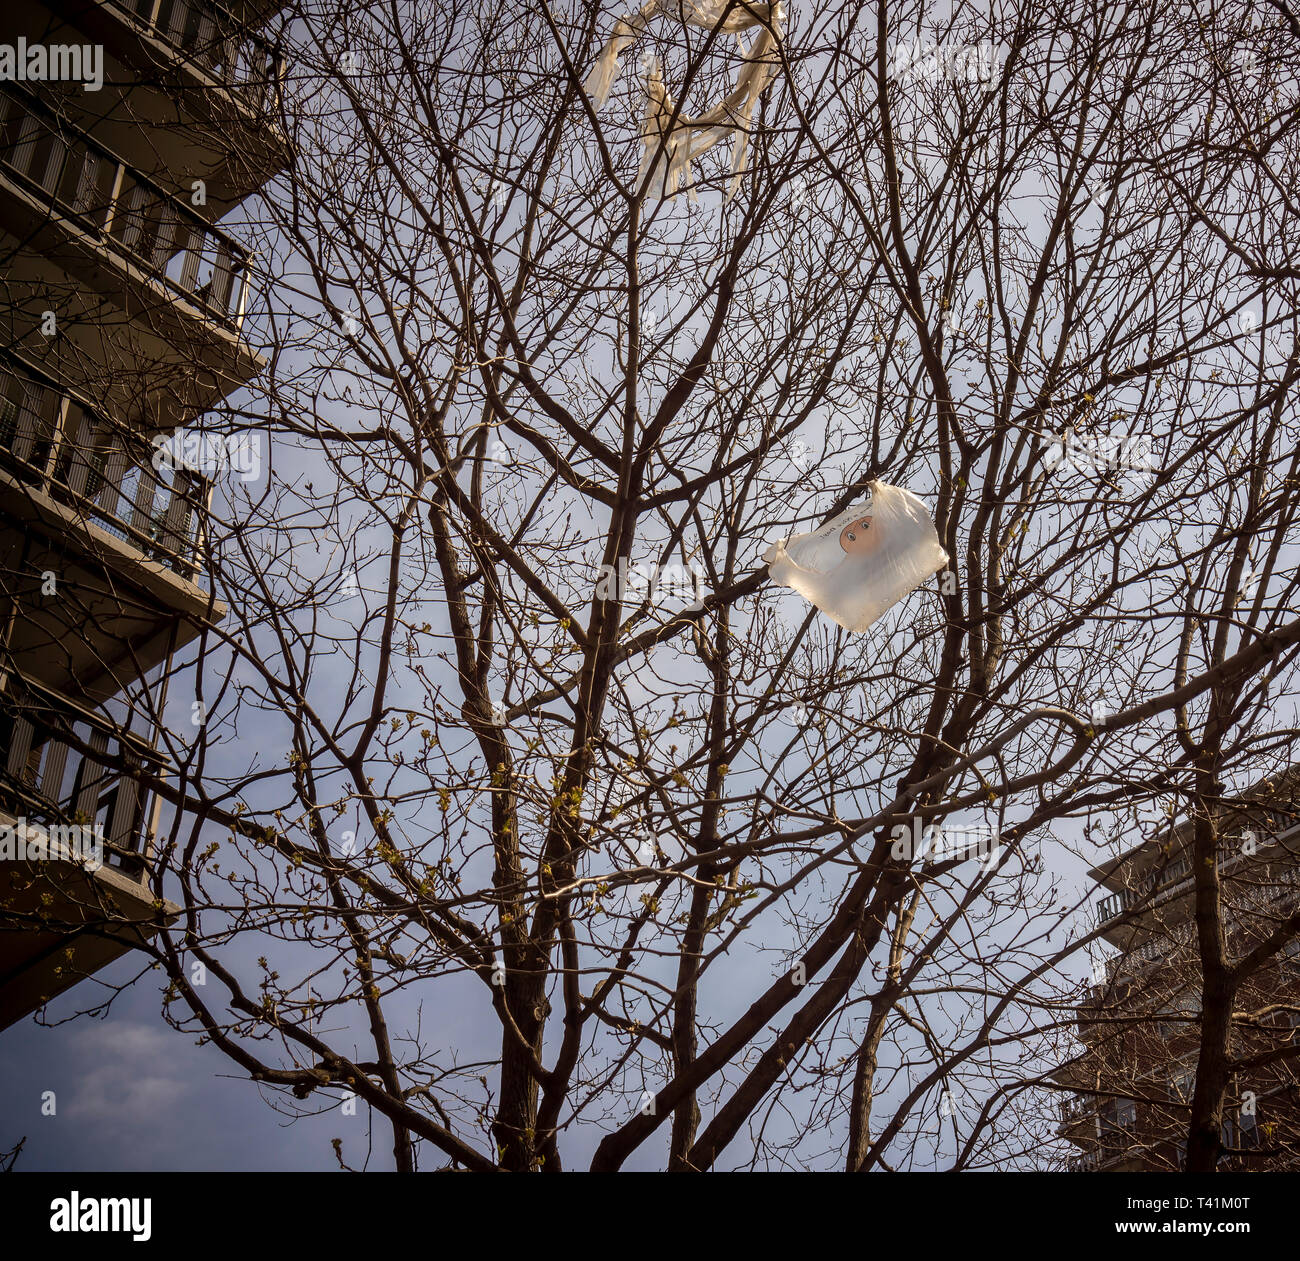 A plastic bag, caught in a tree in New York on Sunday, April 7, 2019. New York State lawmakers have approved a statewide ban on single-use plastic bags involved in retail sales. The ban, unless overturned, will take effect march 2020. (© Richard B. Levine) - Stock Image